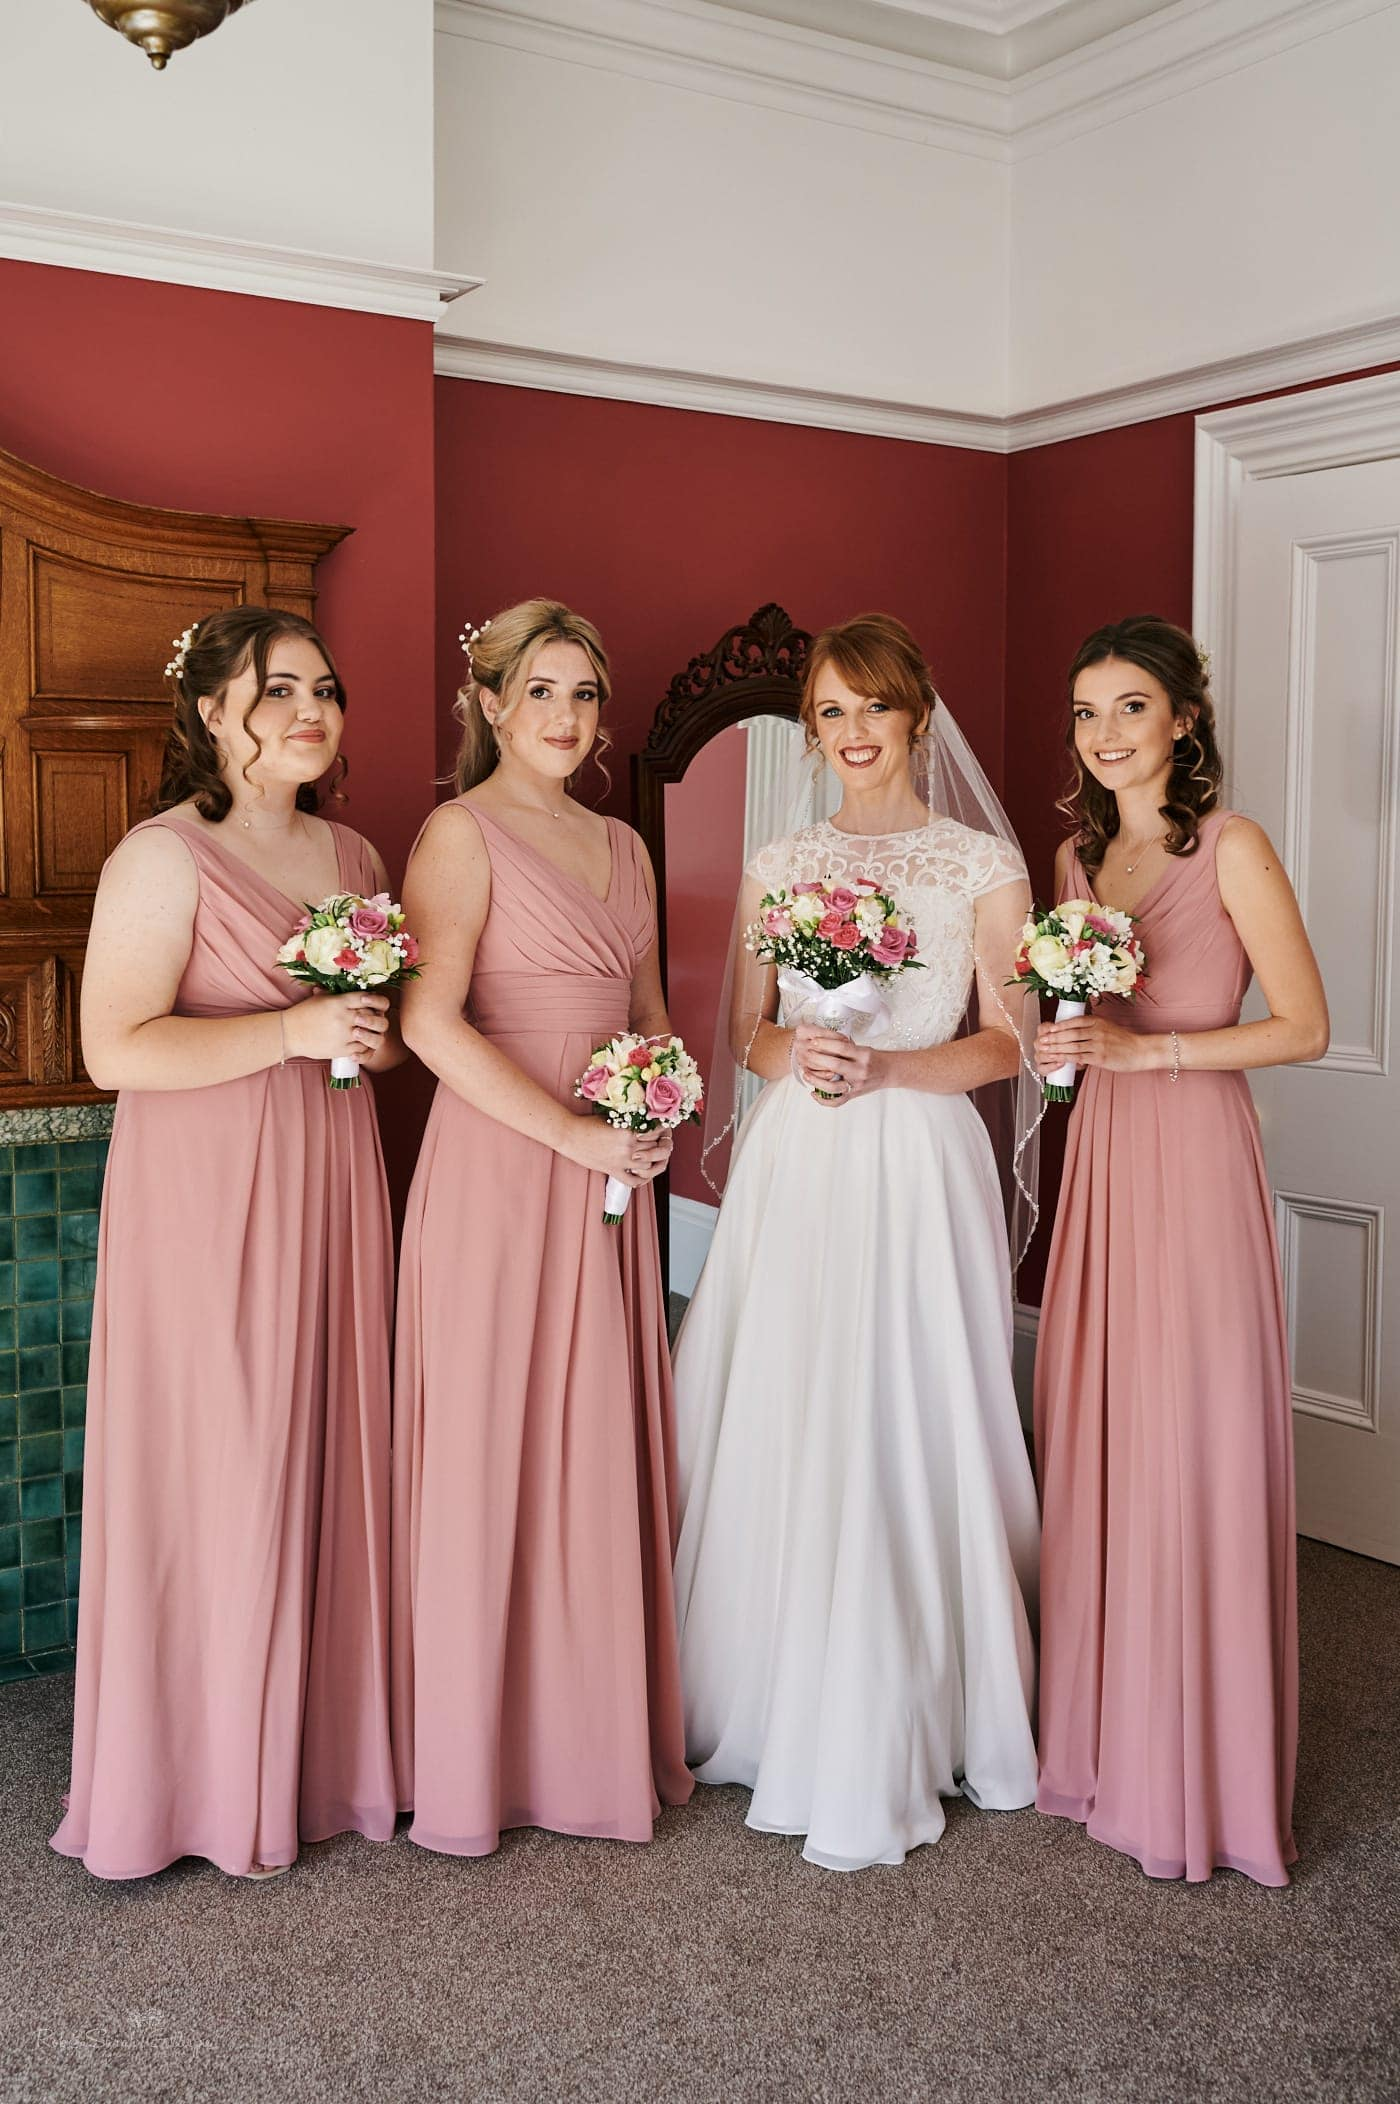 Group photo of bride and bridesmaids in Strawberry Thief room at Pendrell Hall